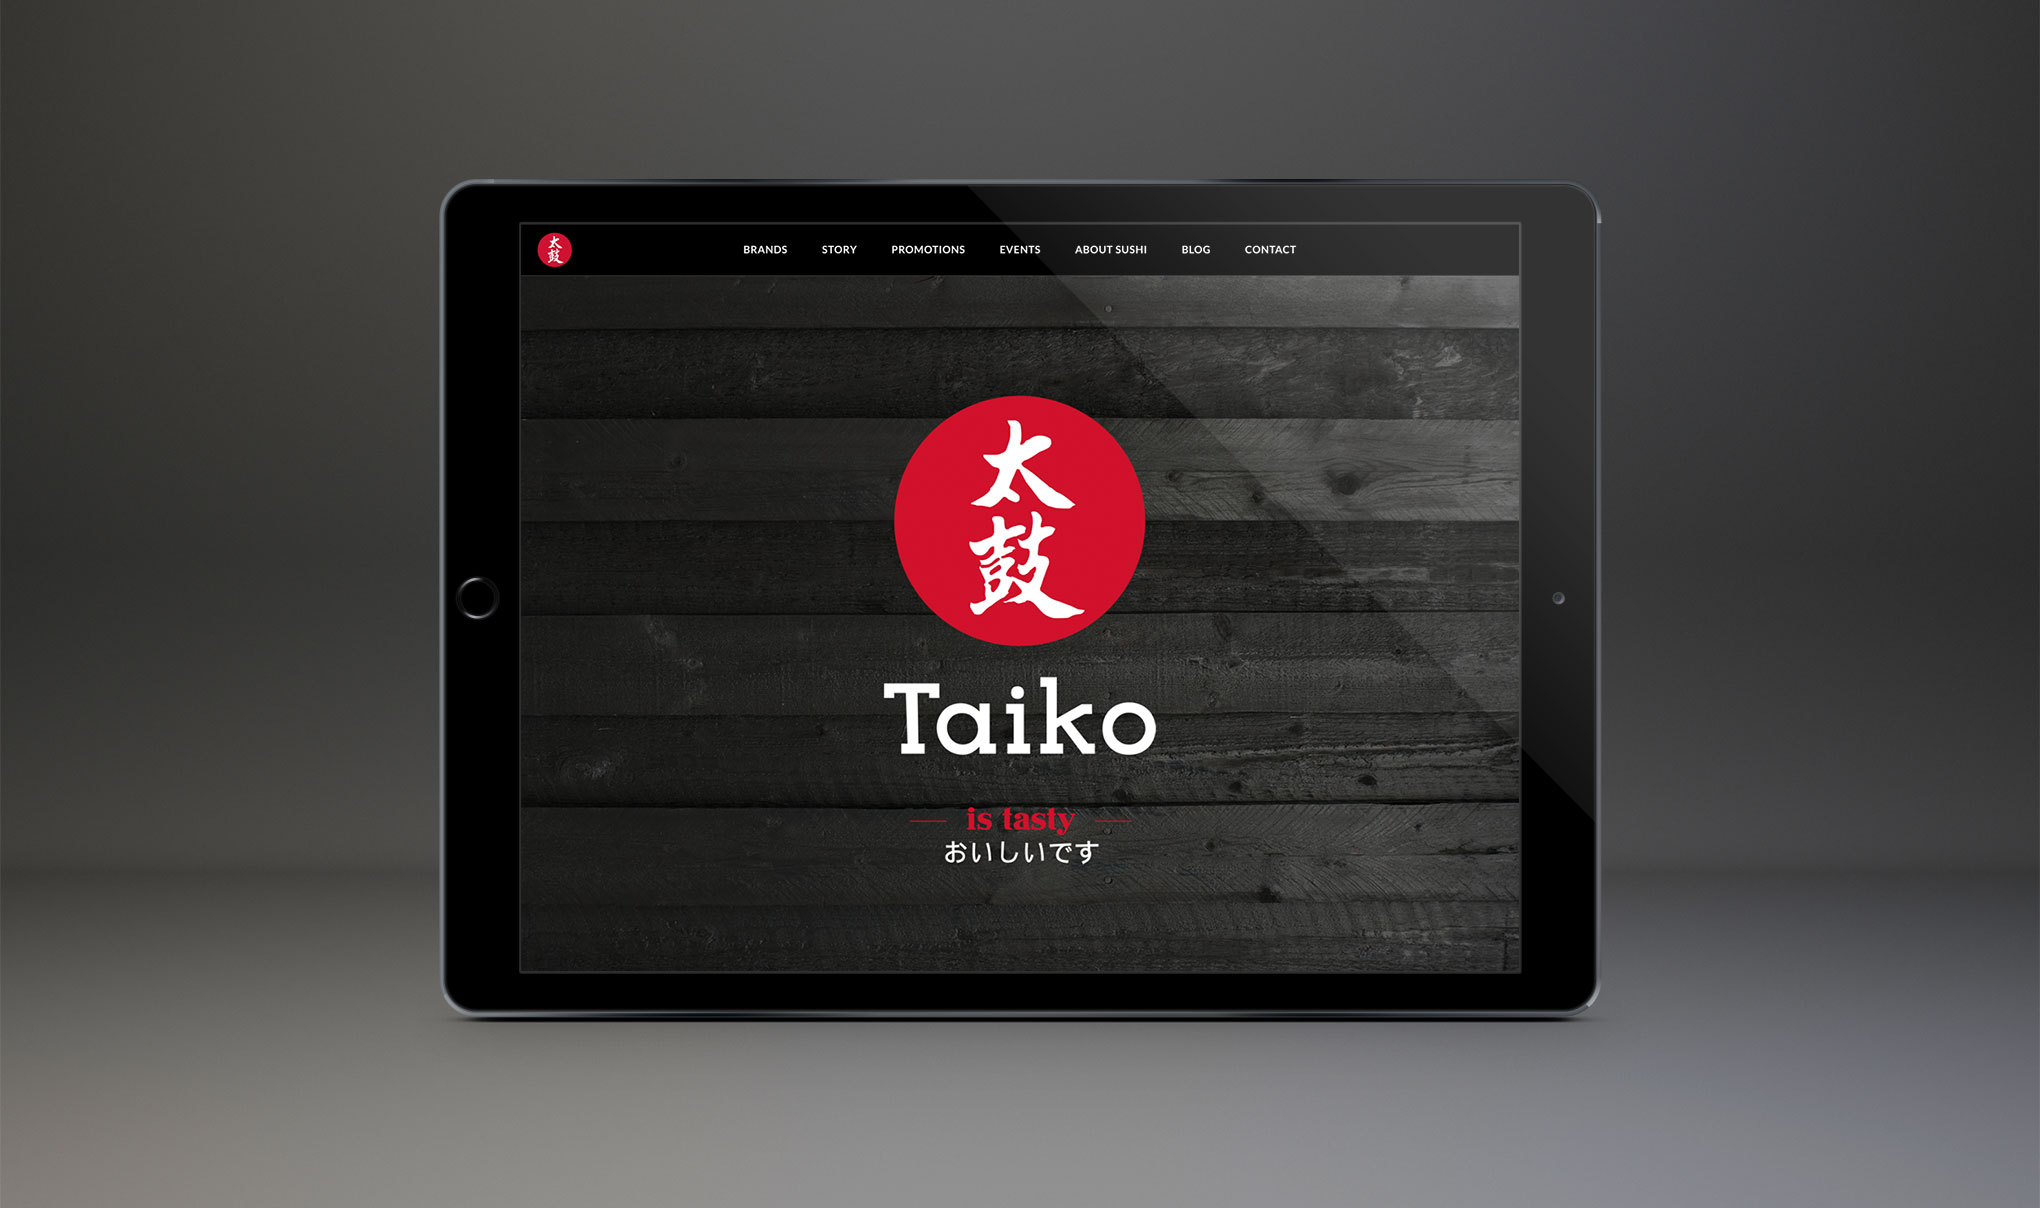 Website Design for Taiko Sushi. Image shows home page on an iPad. Created by Brighton web design agency - Flipflop Design.